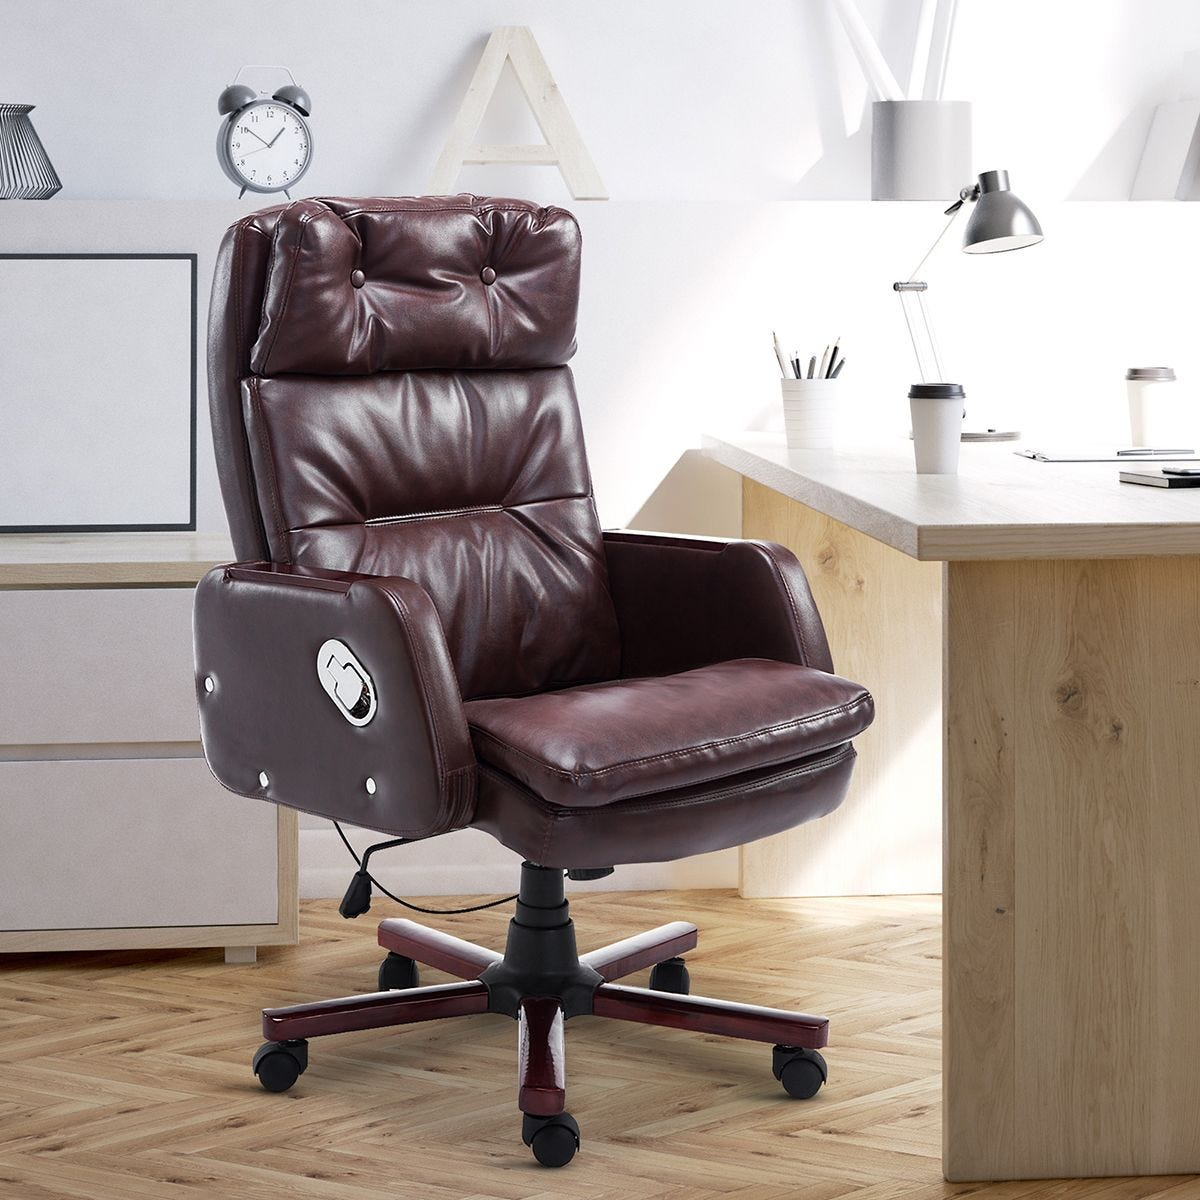 Faux Leather Office Chair Executive Swivel With Arm Wheel Brown